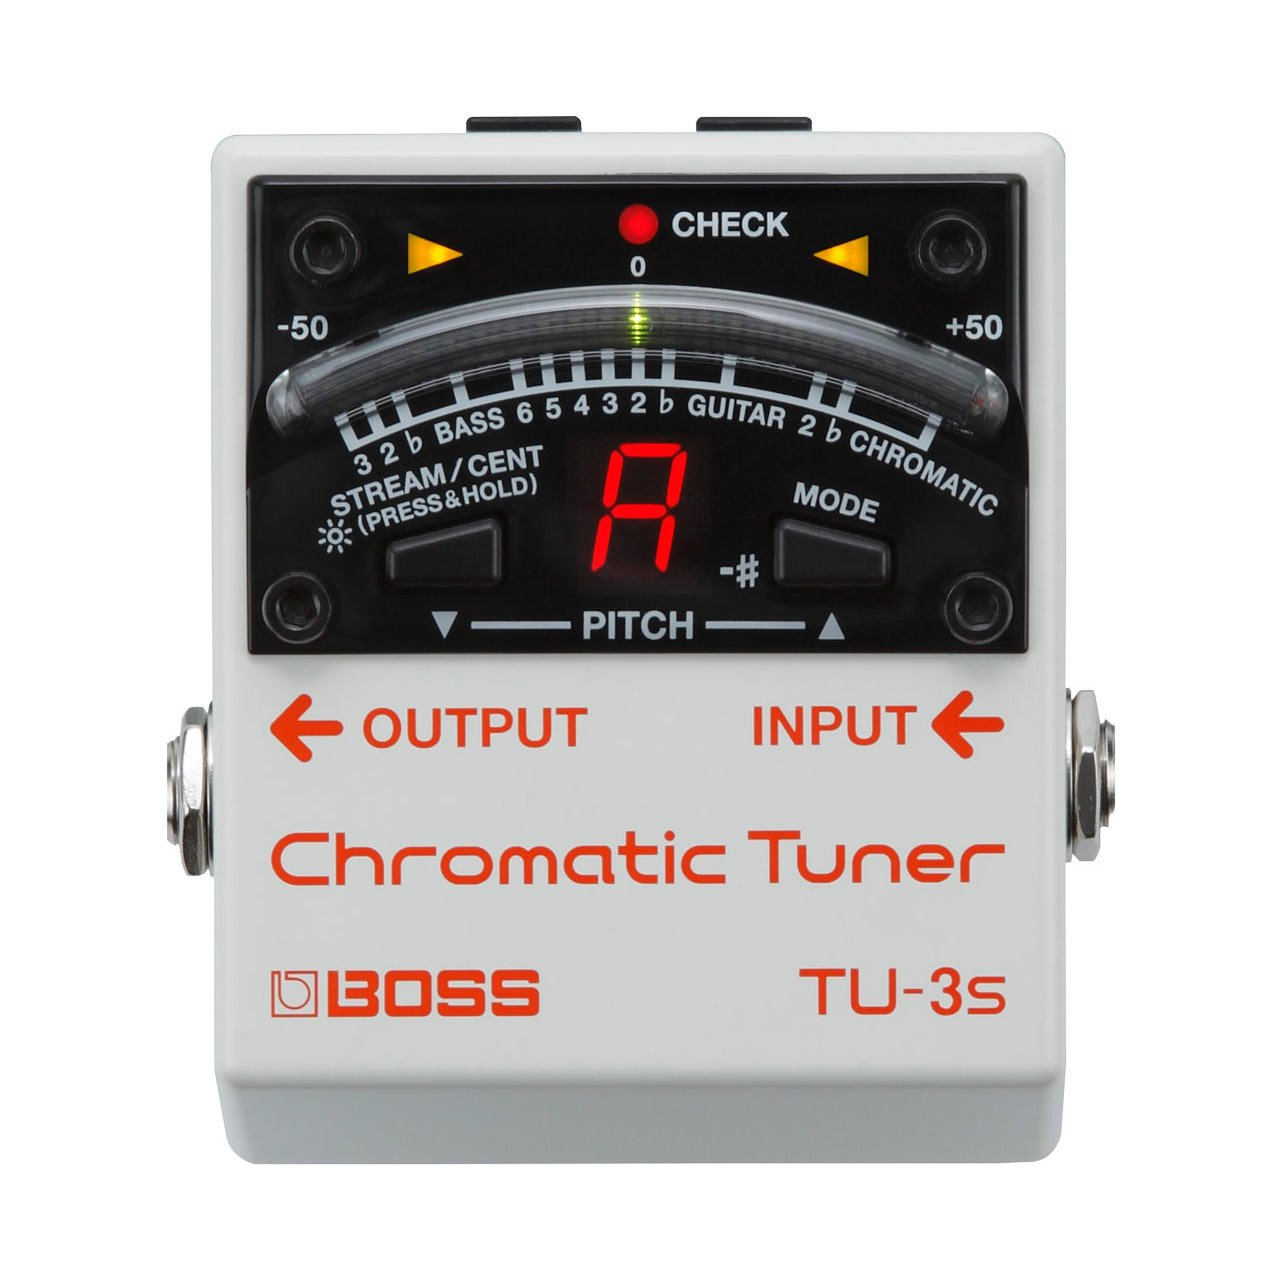 Guitar Tuners - BOSS TU-3S Chromatic Tuner